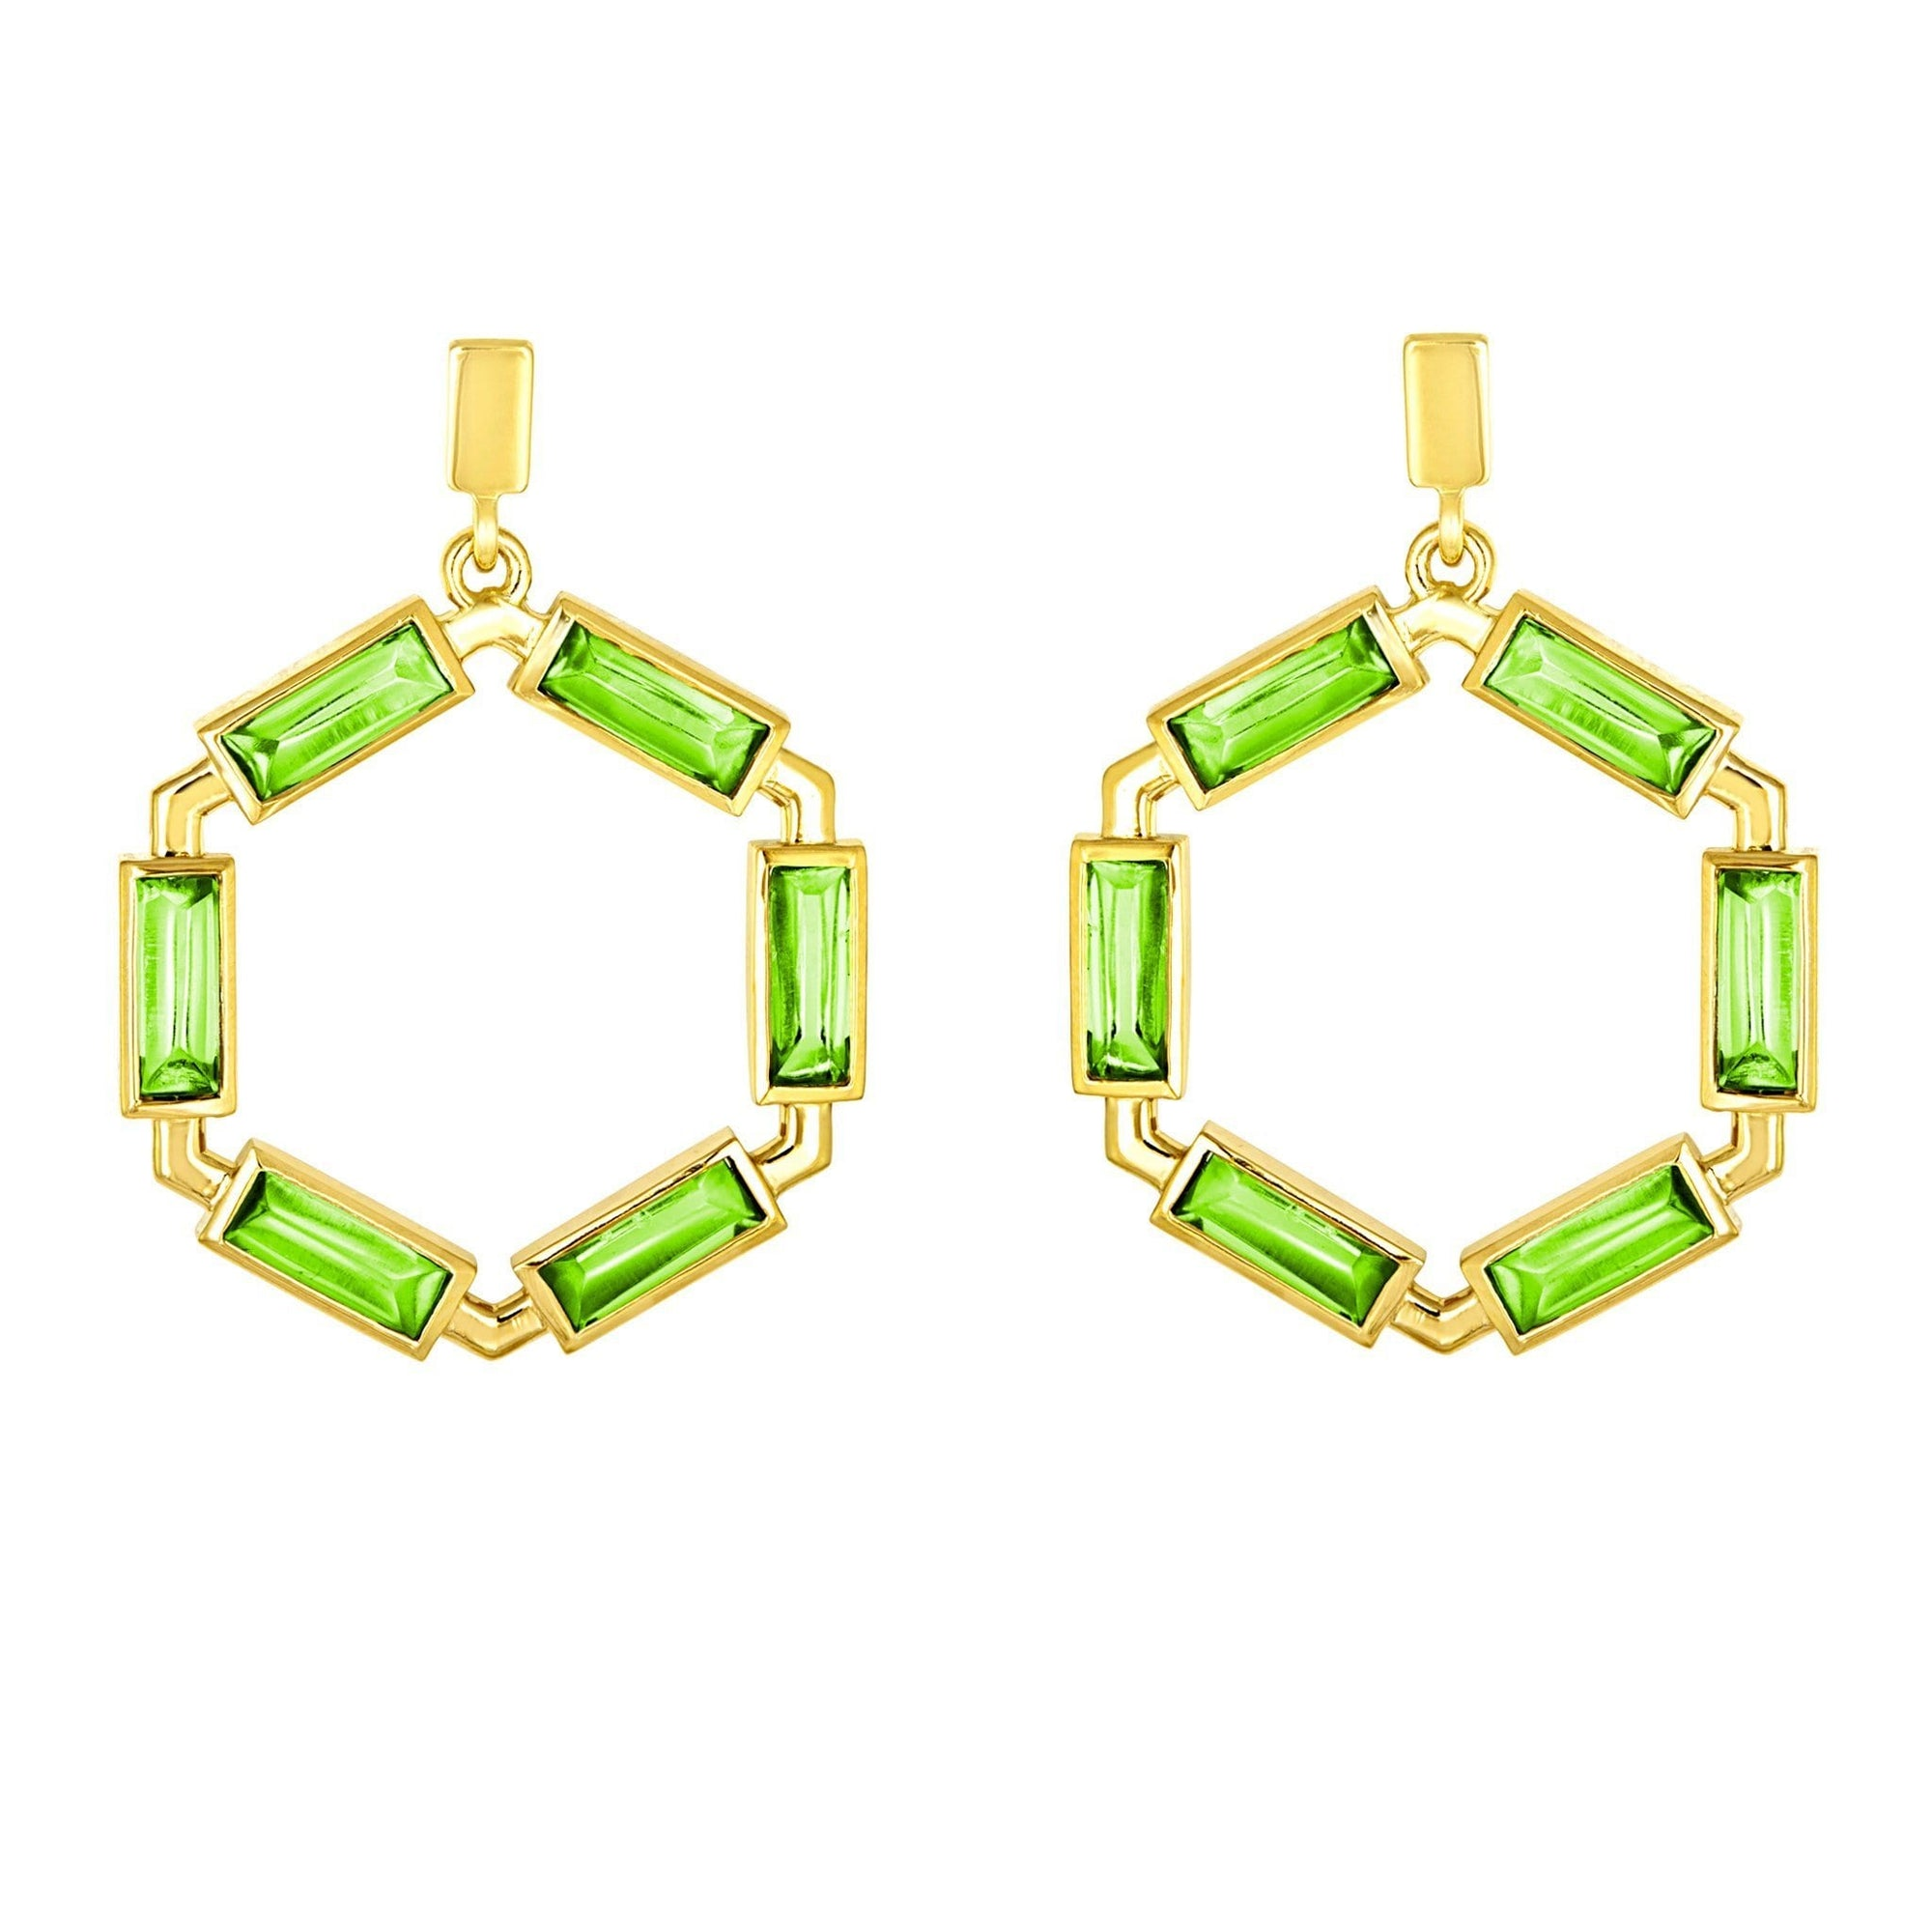 Block Hoop Earrings: 18k Gold, Peridot Baguettes